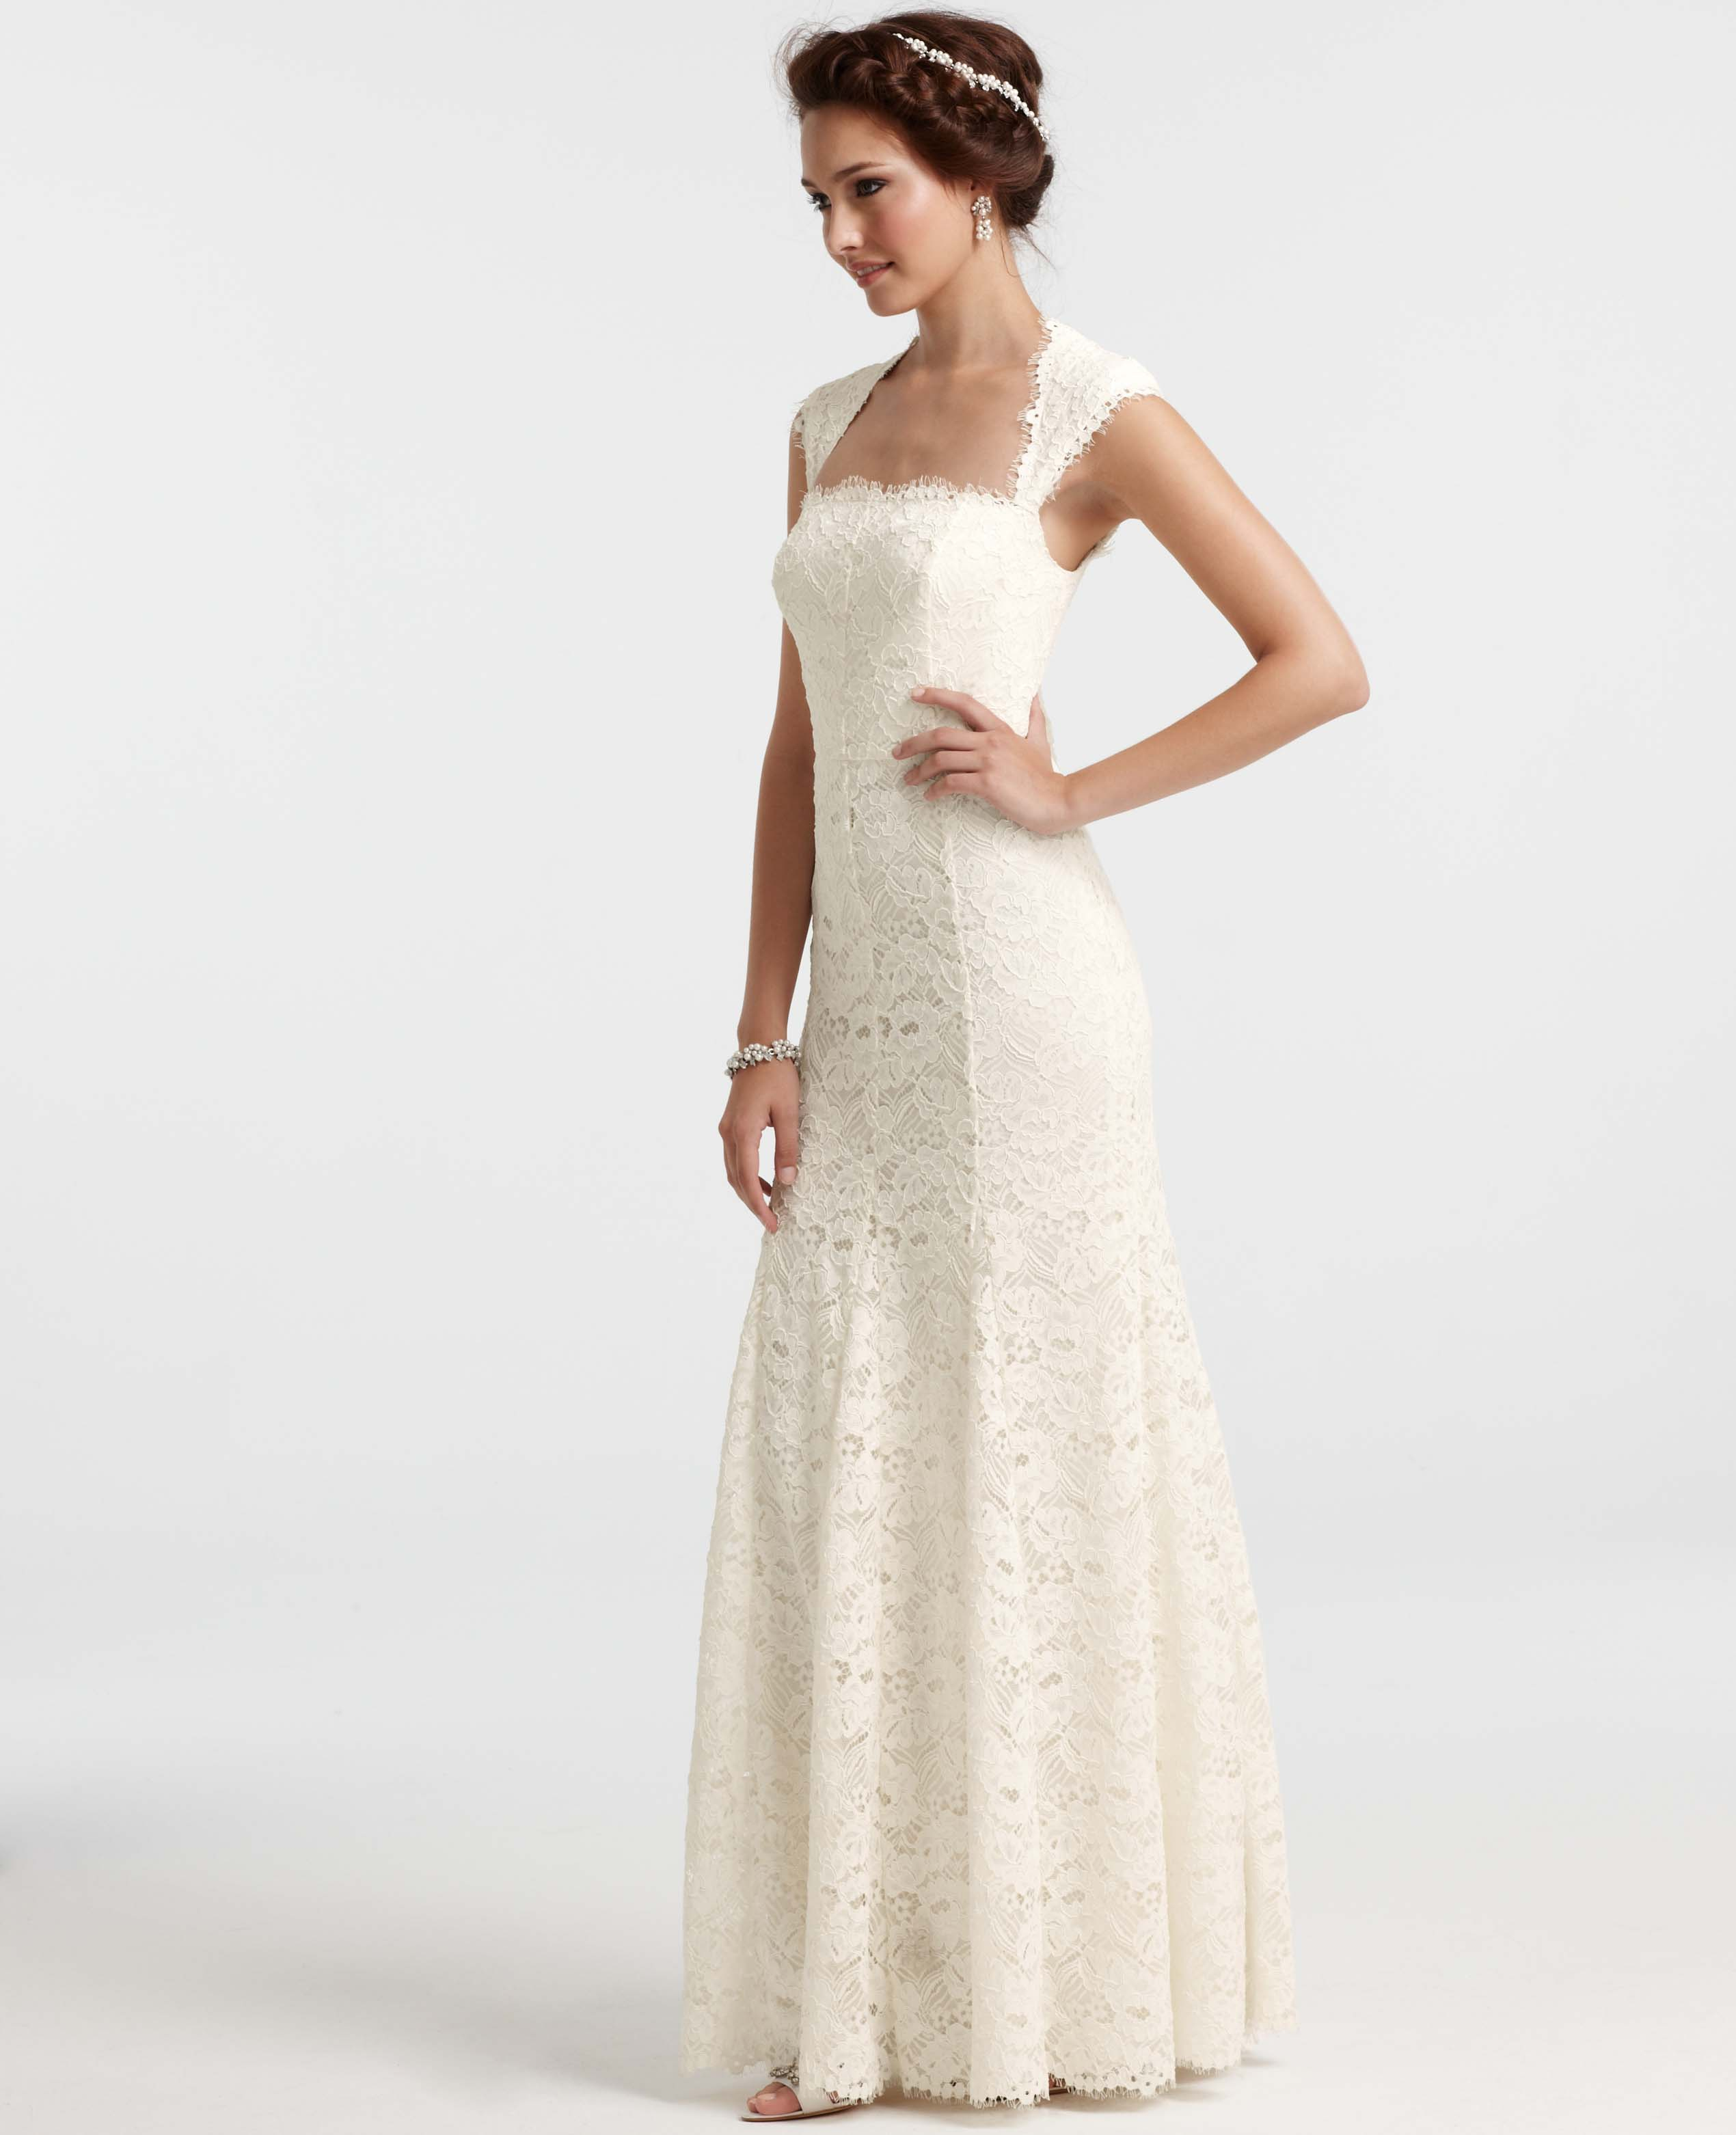 Lyst - Ann Taylor Petite Isabella Lace Wedding Dress in White